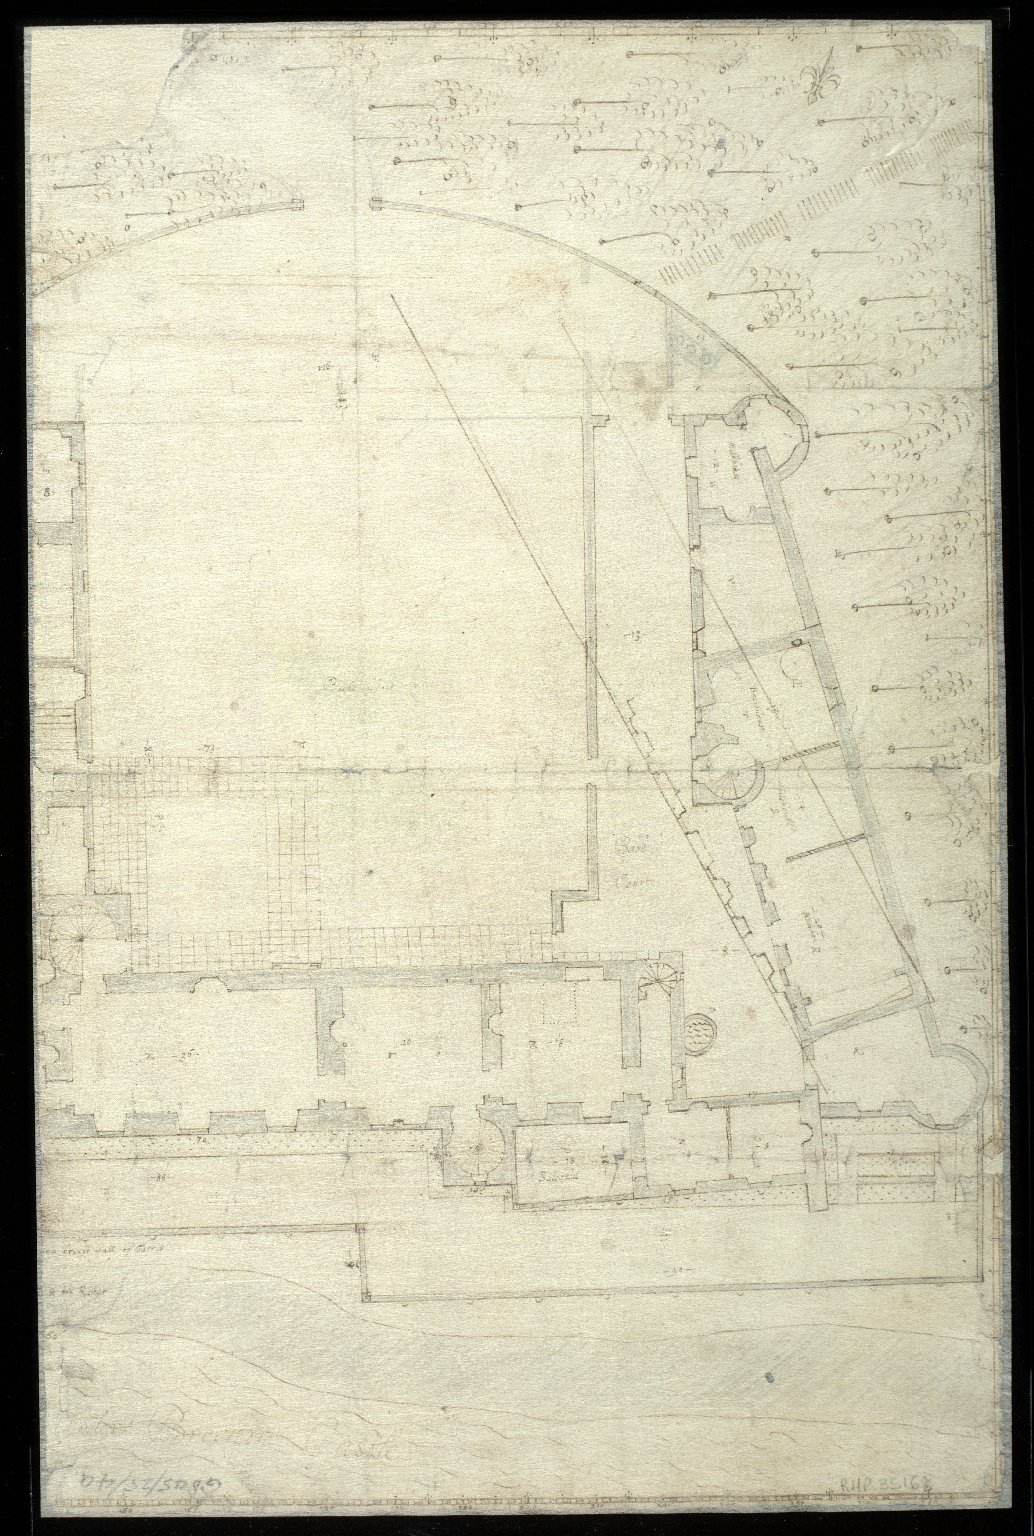 Sketch plan of Brechin Castle with South Esk river, and Skinner's Burn with the Town Yards of Brechin [2 of 2]